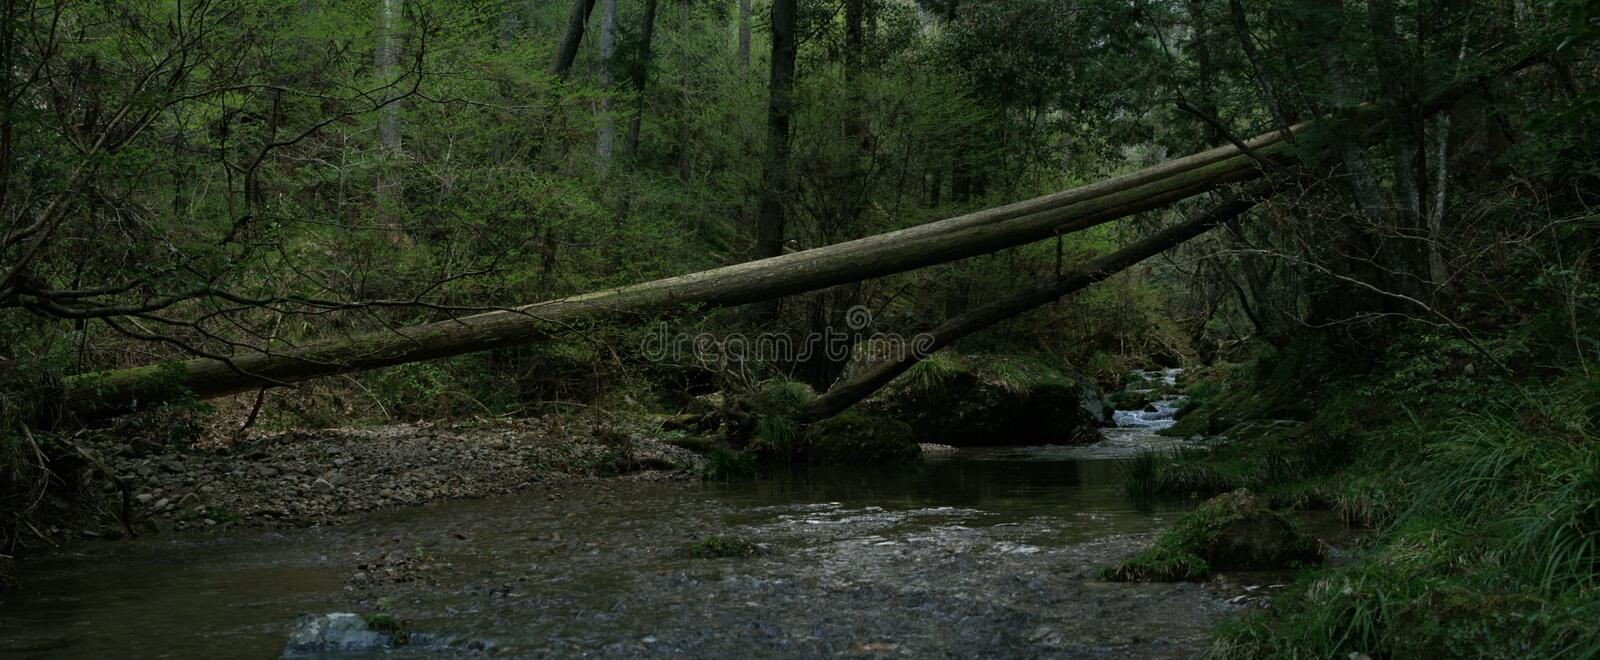 Fallen tree in the forest across the river. Fallen trees in the forest across the river royalty free stock image